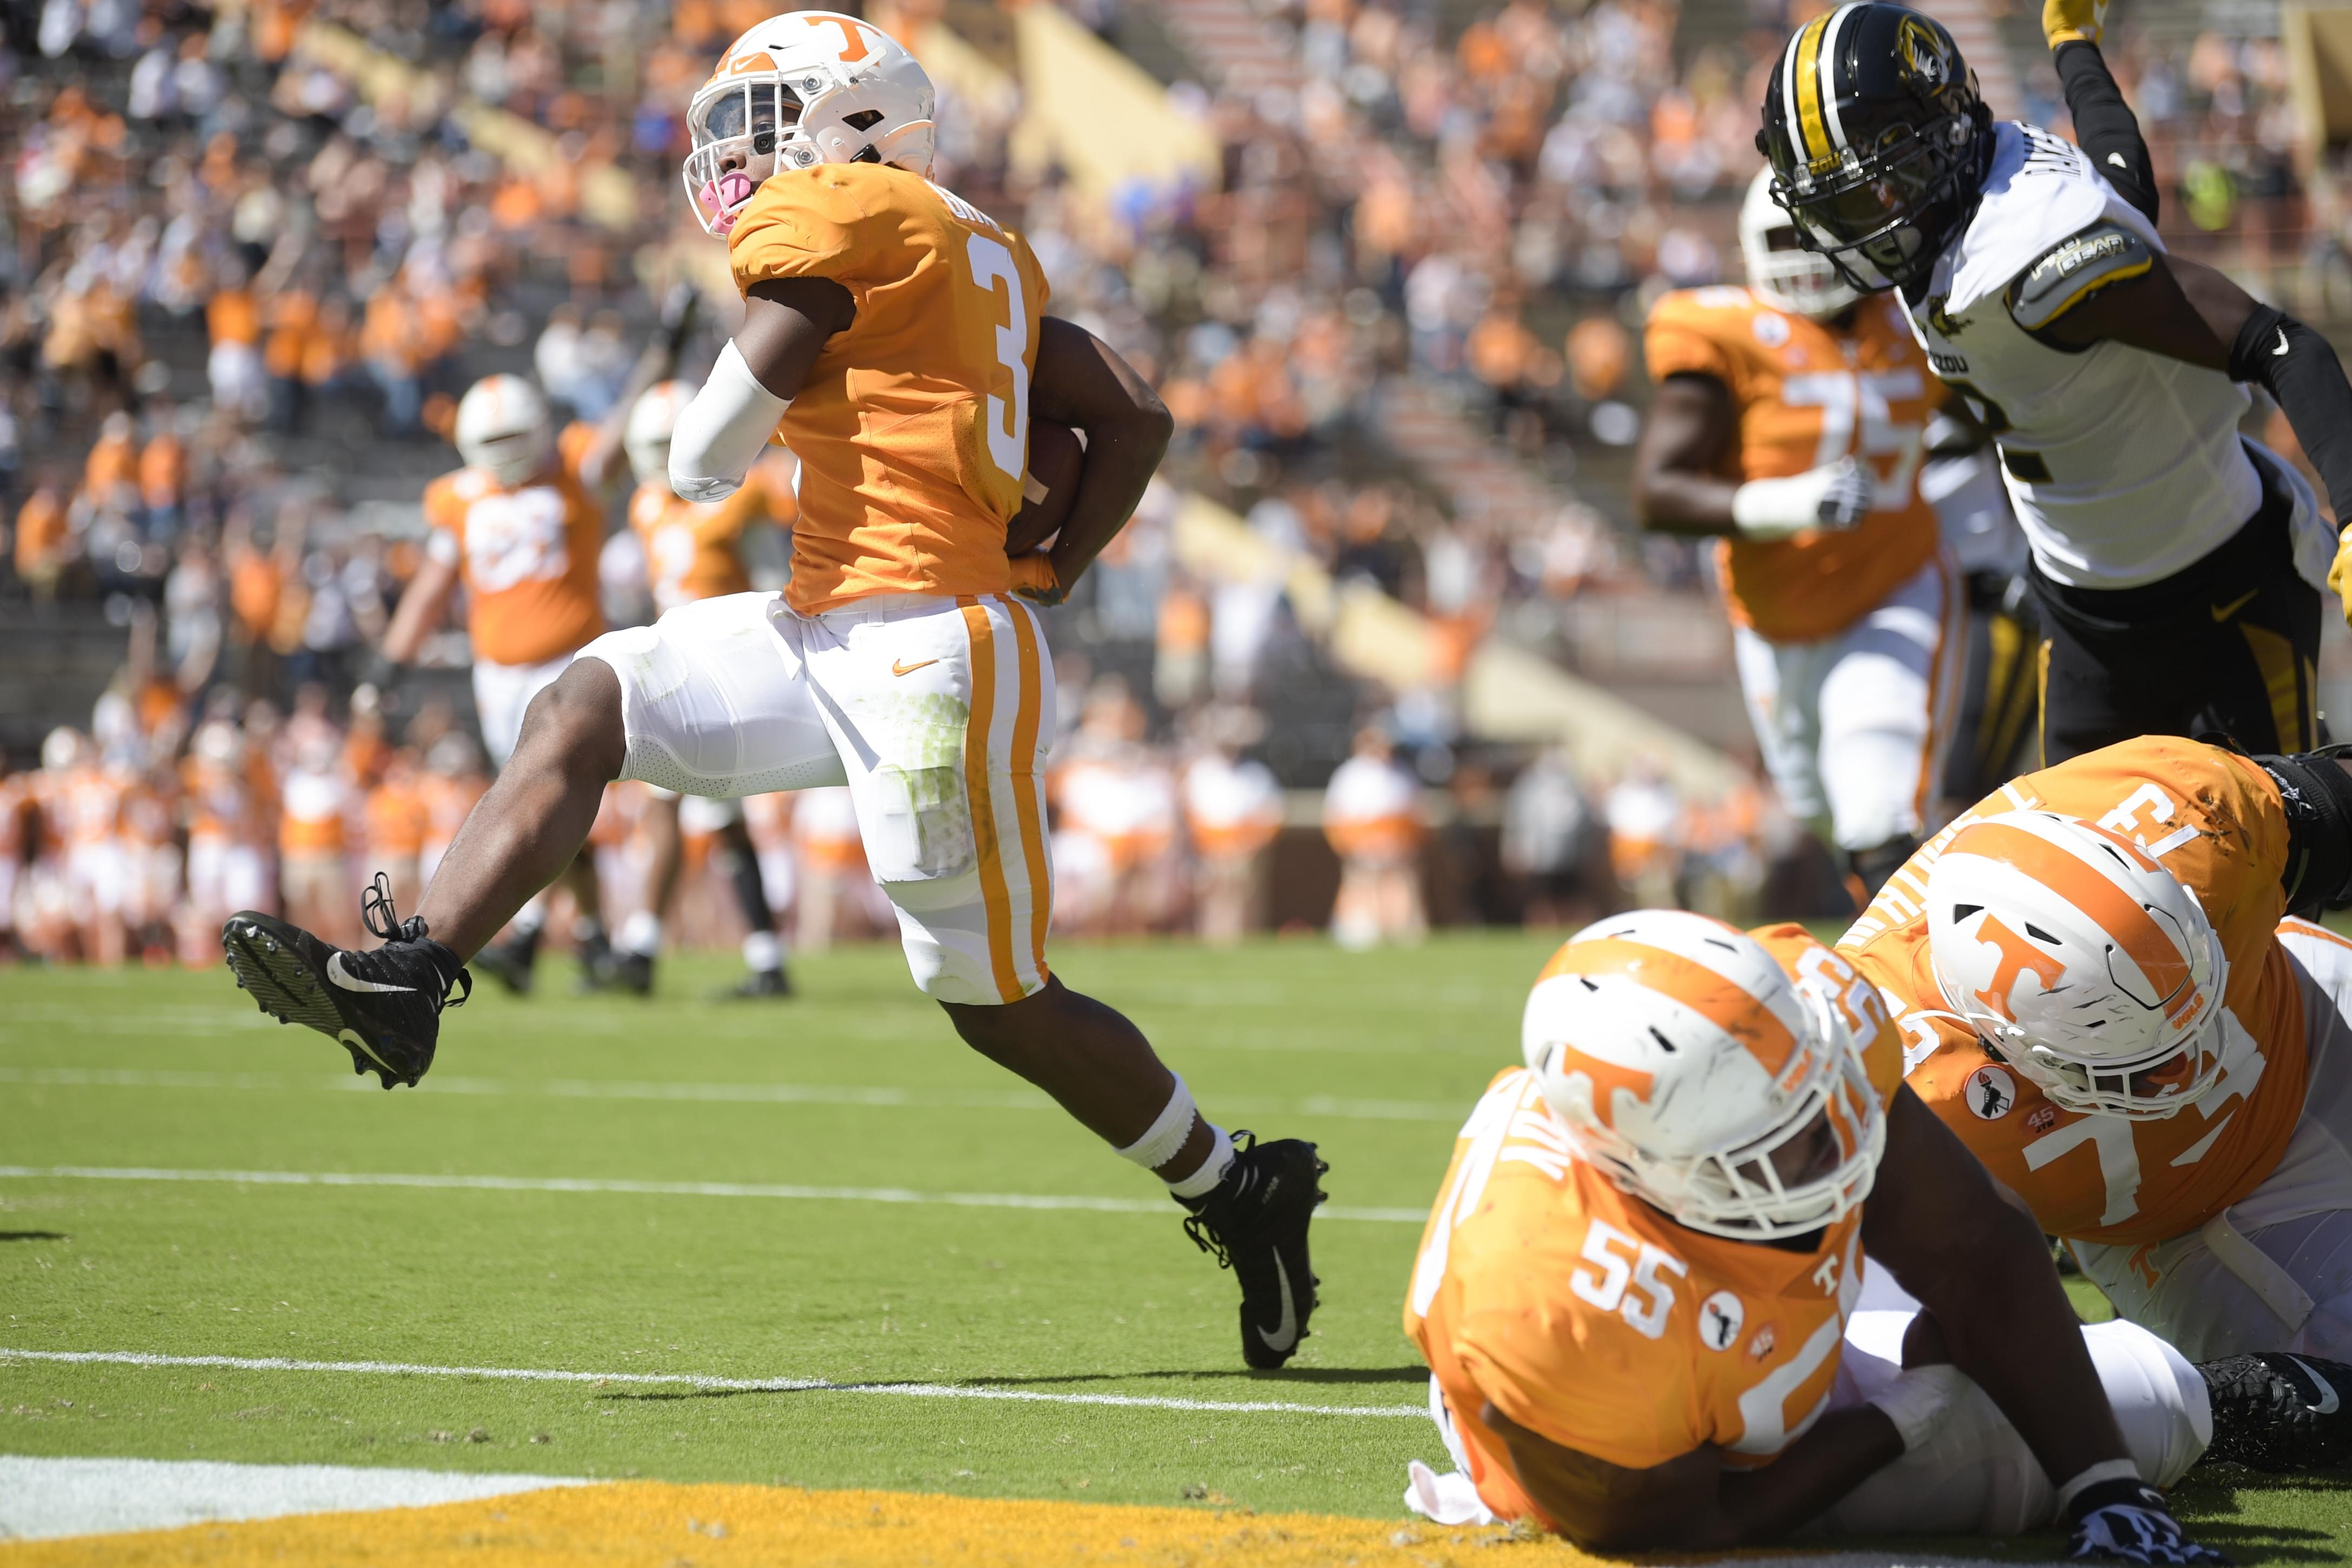 PHOTO GALLERY: Tennessee's 35-12 win over Missouri